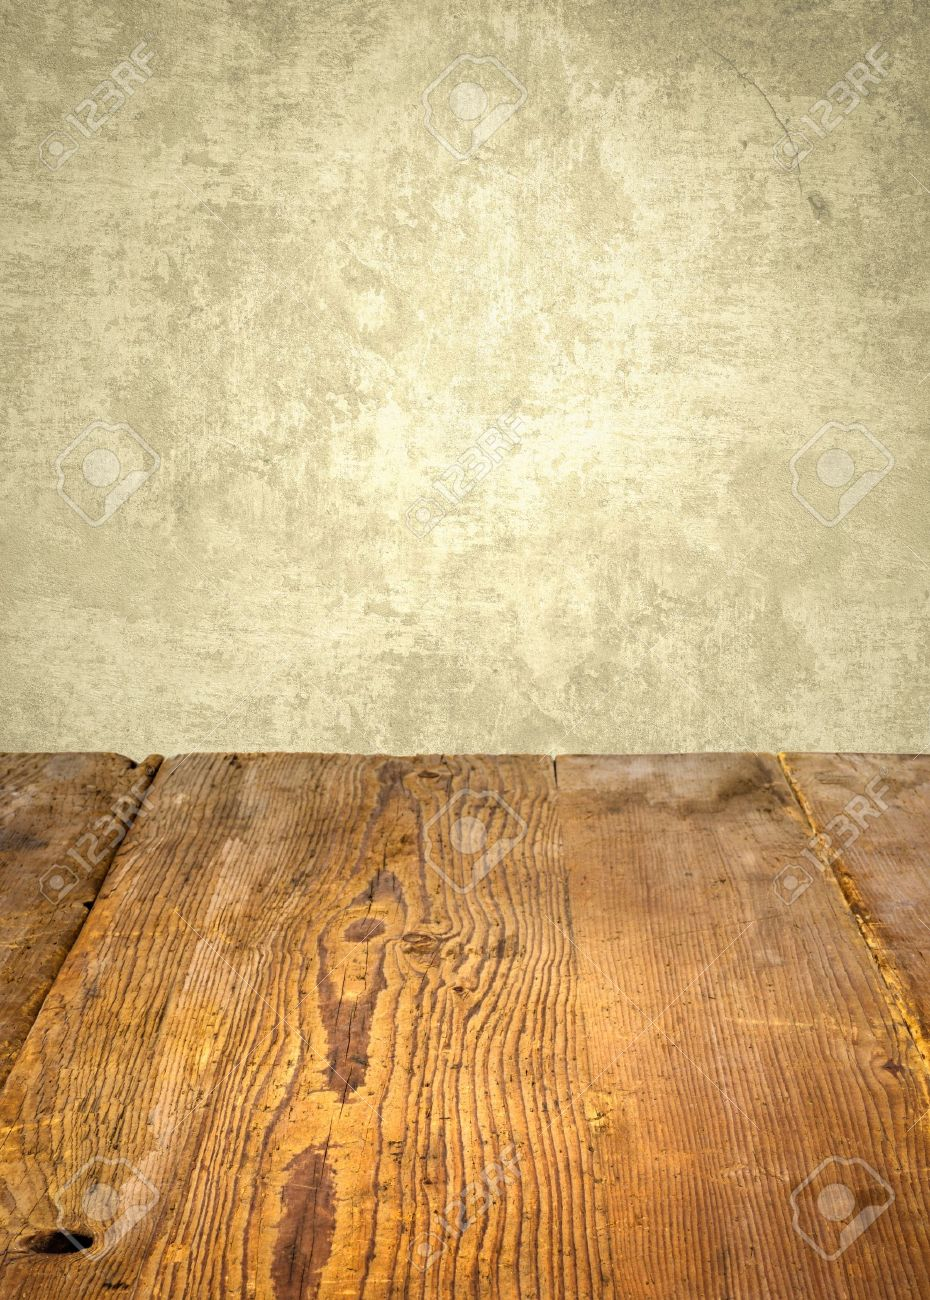 antique wooden table in front of weathered wall Stock Photo - 18514674